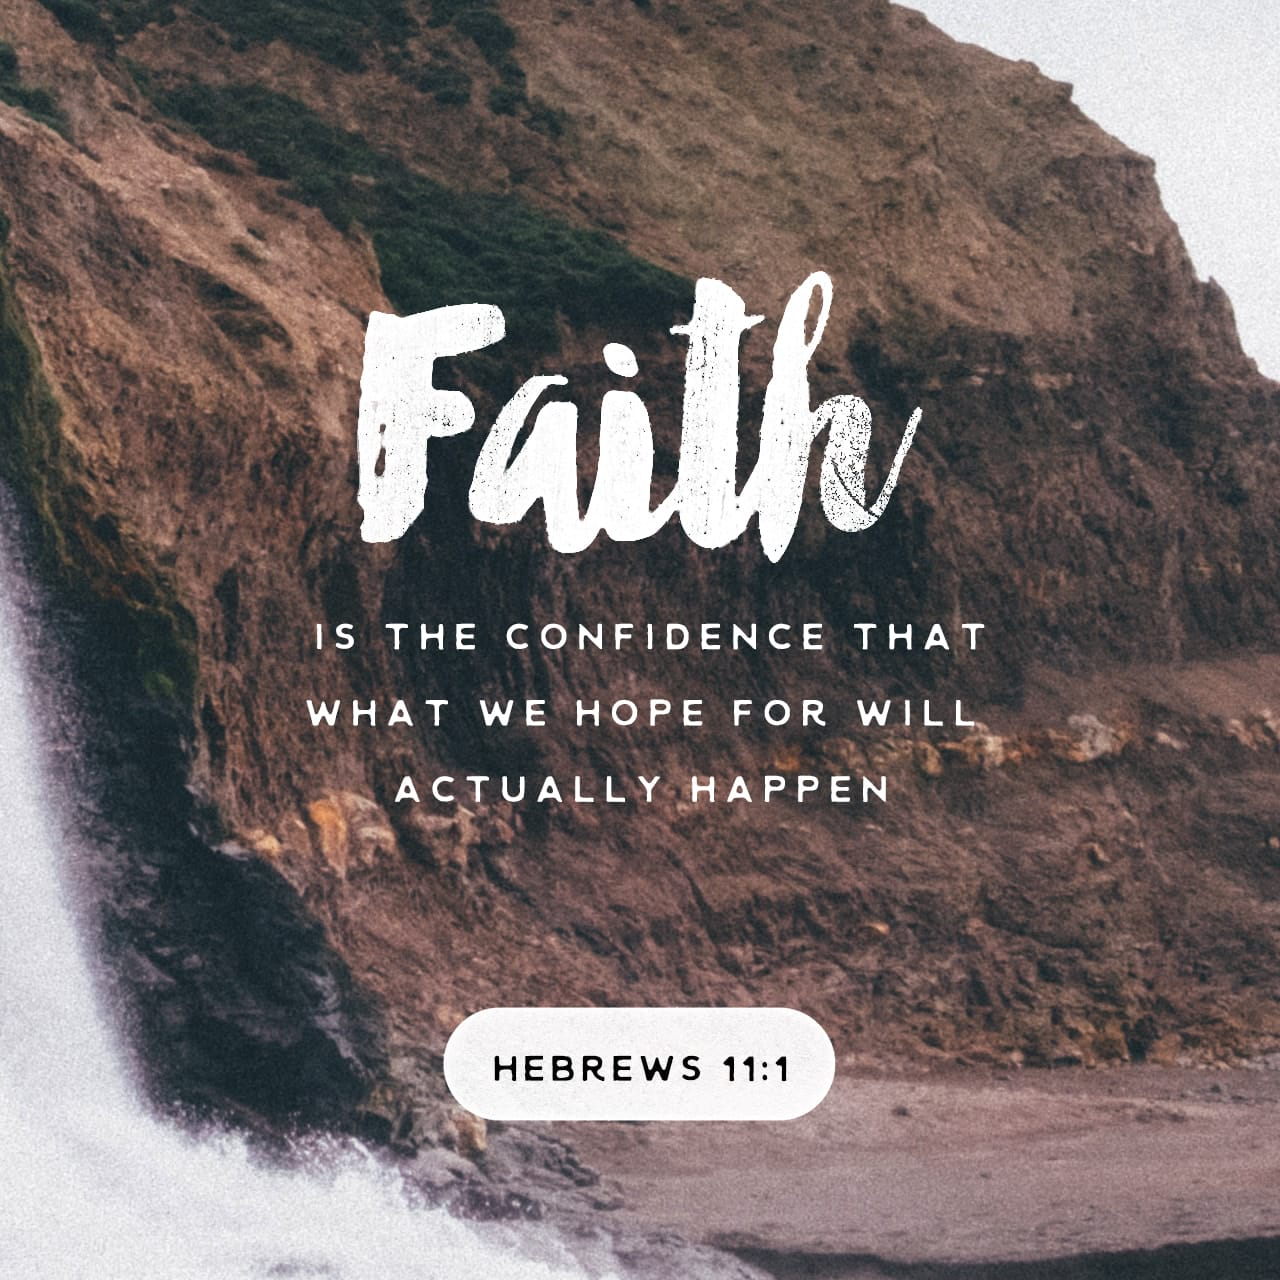 Hebrews 11:1 Now faith is being sure of what we hope for, being convinced of what we do not see. | New English Translation (NET)